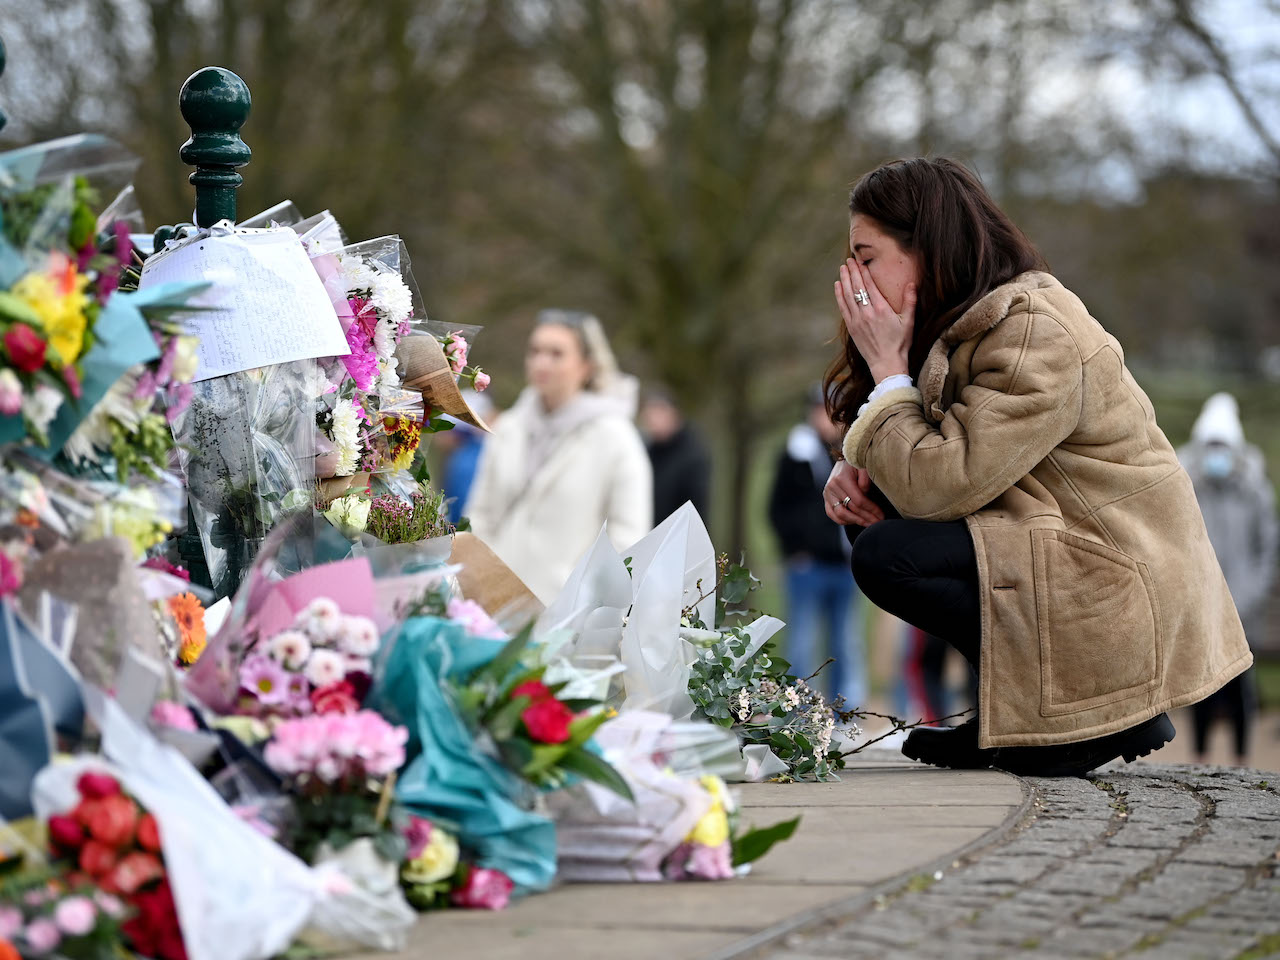 A woman reacts as she lays flowers in tribute to Sarah Everard at the bandstand on Clapham Common on March 13, 2021 in London, United Kingdom. Vigils are being held across the United Kingdom in memory of Sarah Everard. Yesterday, the Police confirmed that the remains of Ms Everard were found in a woodland area in Ashford, a week after she went missing as she walked home from visiting a friend in Clapham. Metropolitan Police Officer Wayne Couzens has been charged with her kidnap and murder.